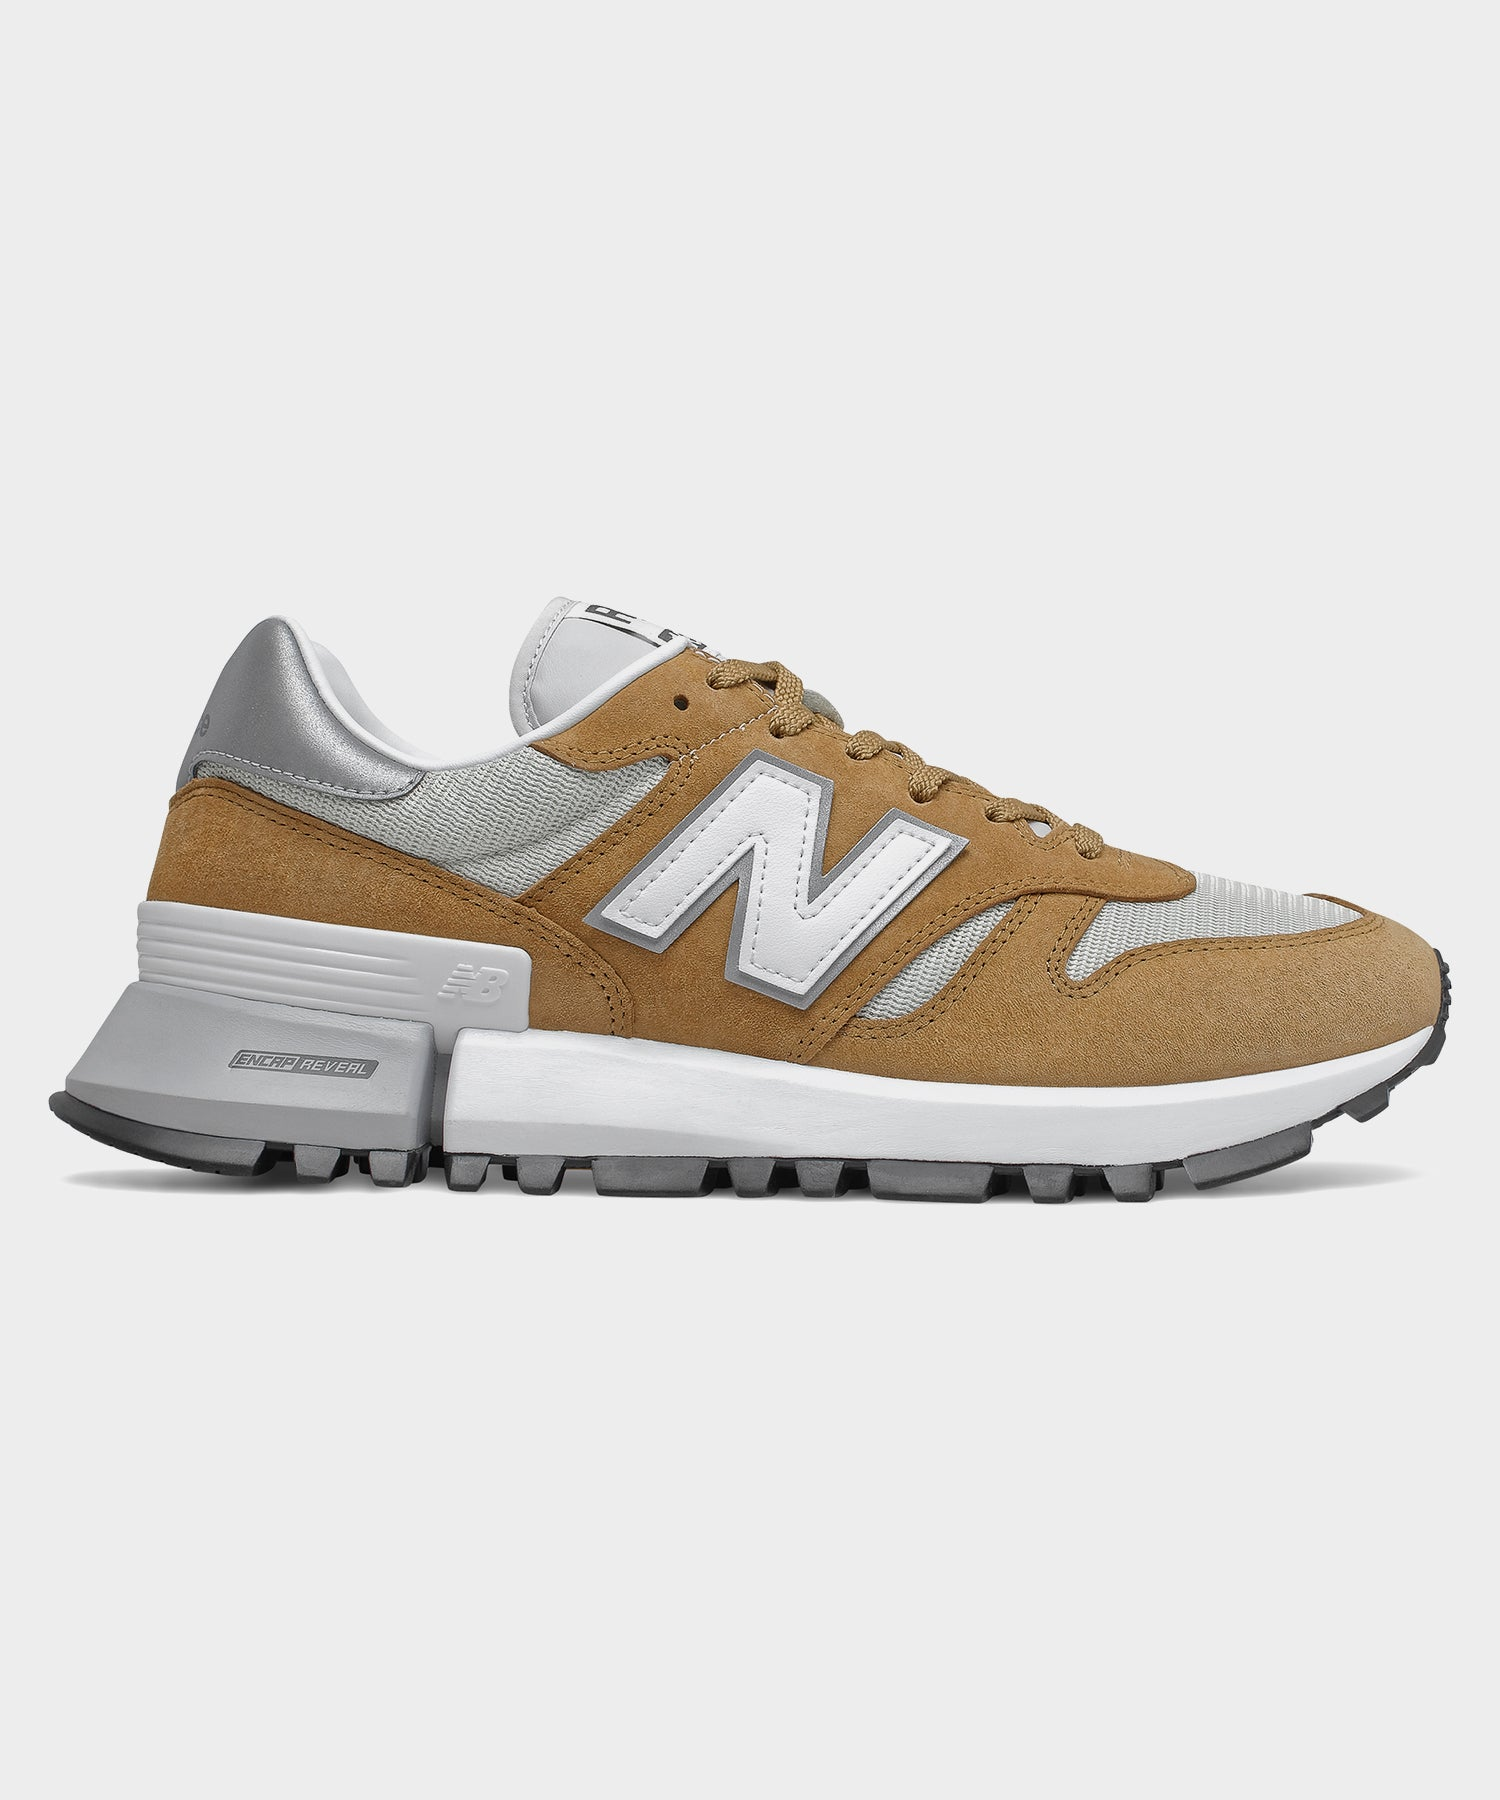 New Balance MS1300 in Brown